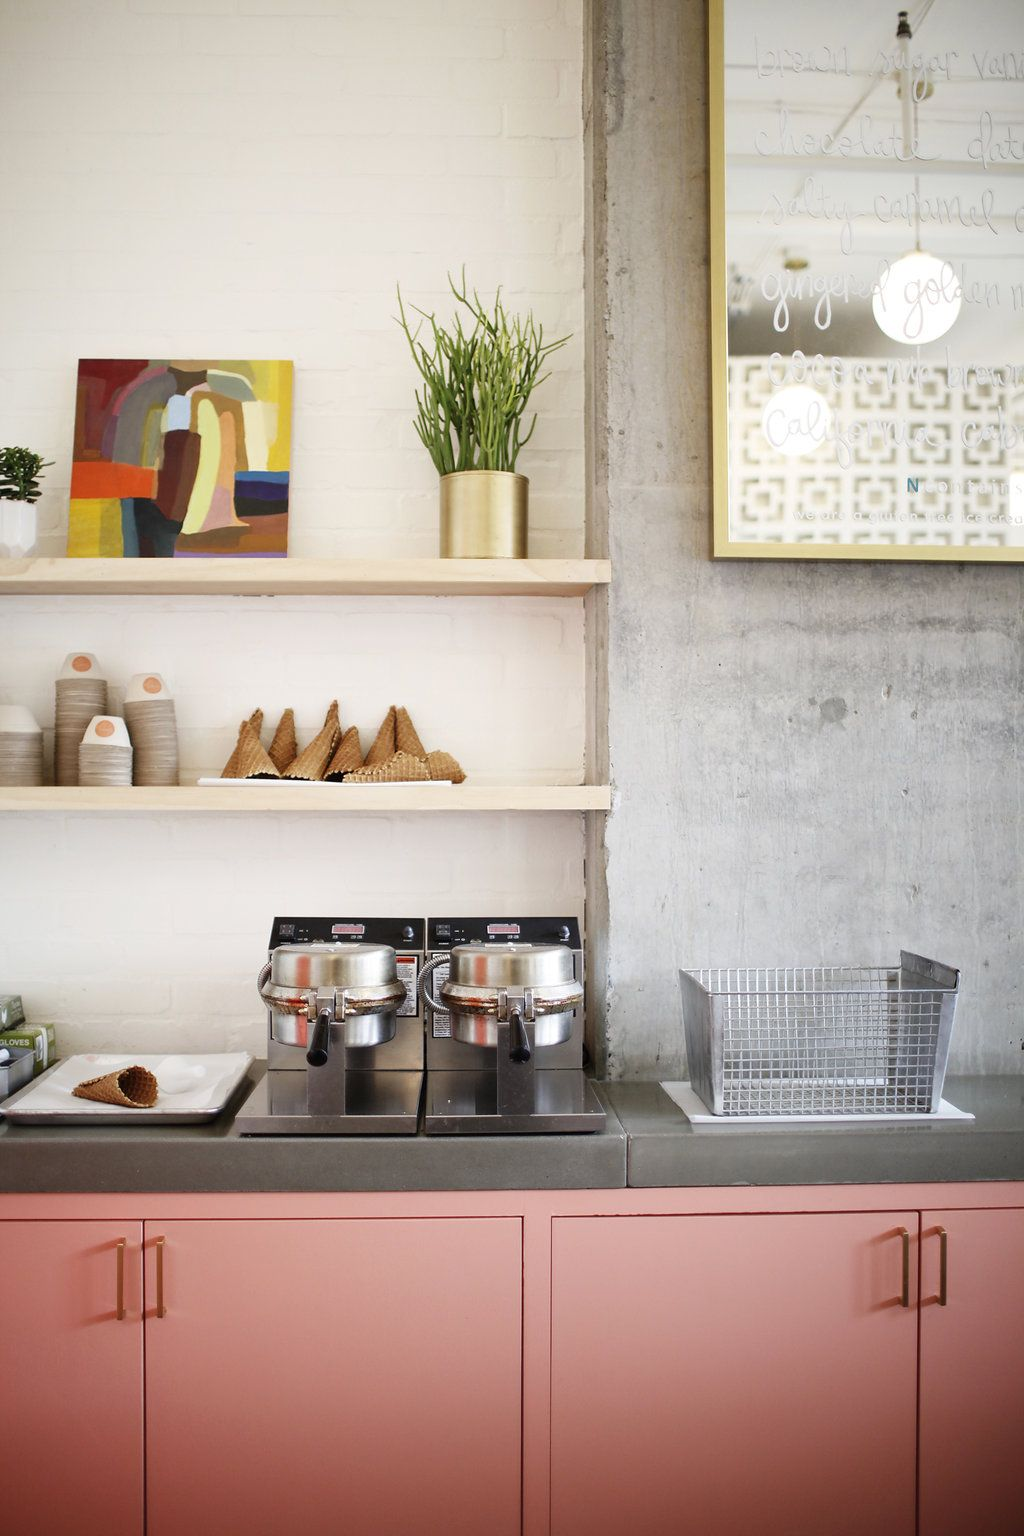 A Vegan Ice Cream Shop Sweetly Styled in Seattle, WA | Design*Sponge